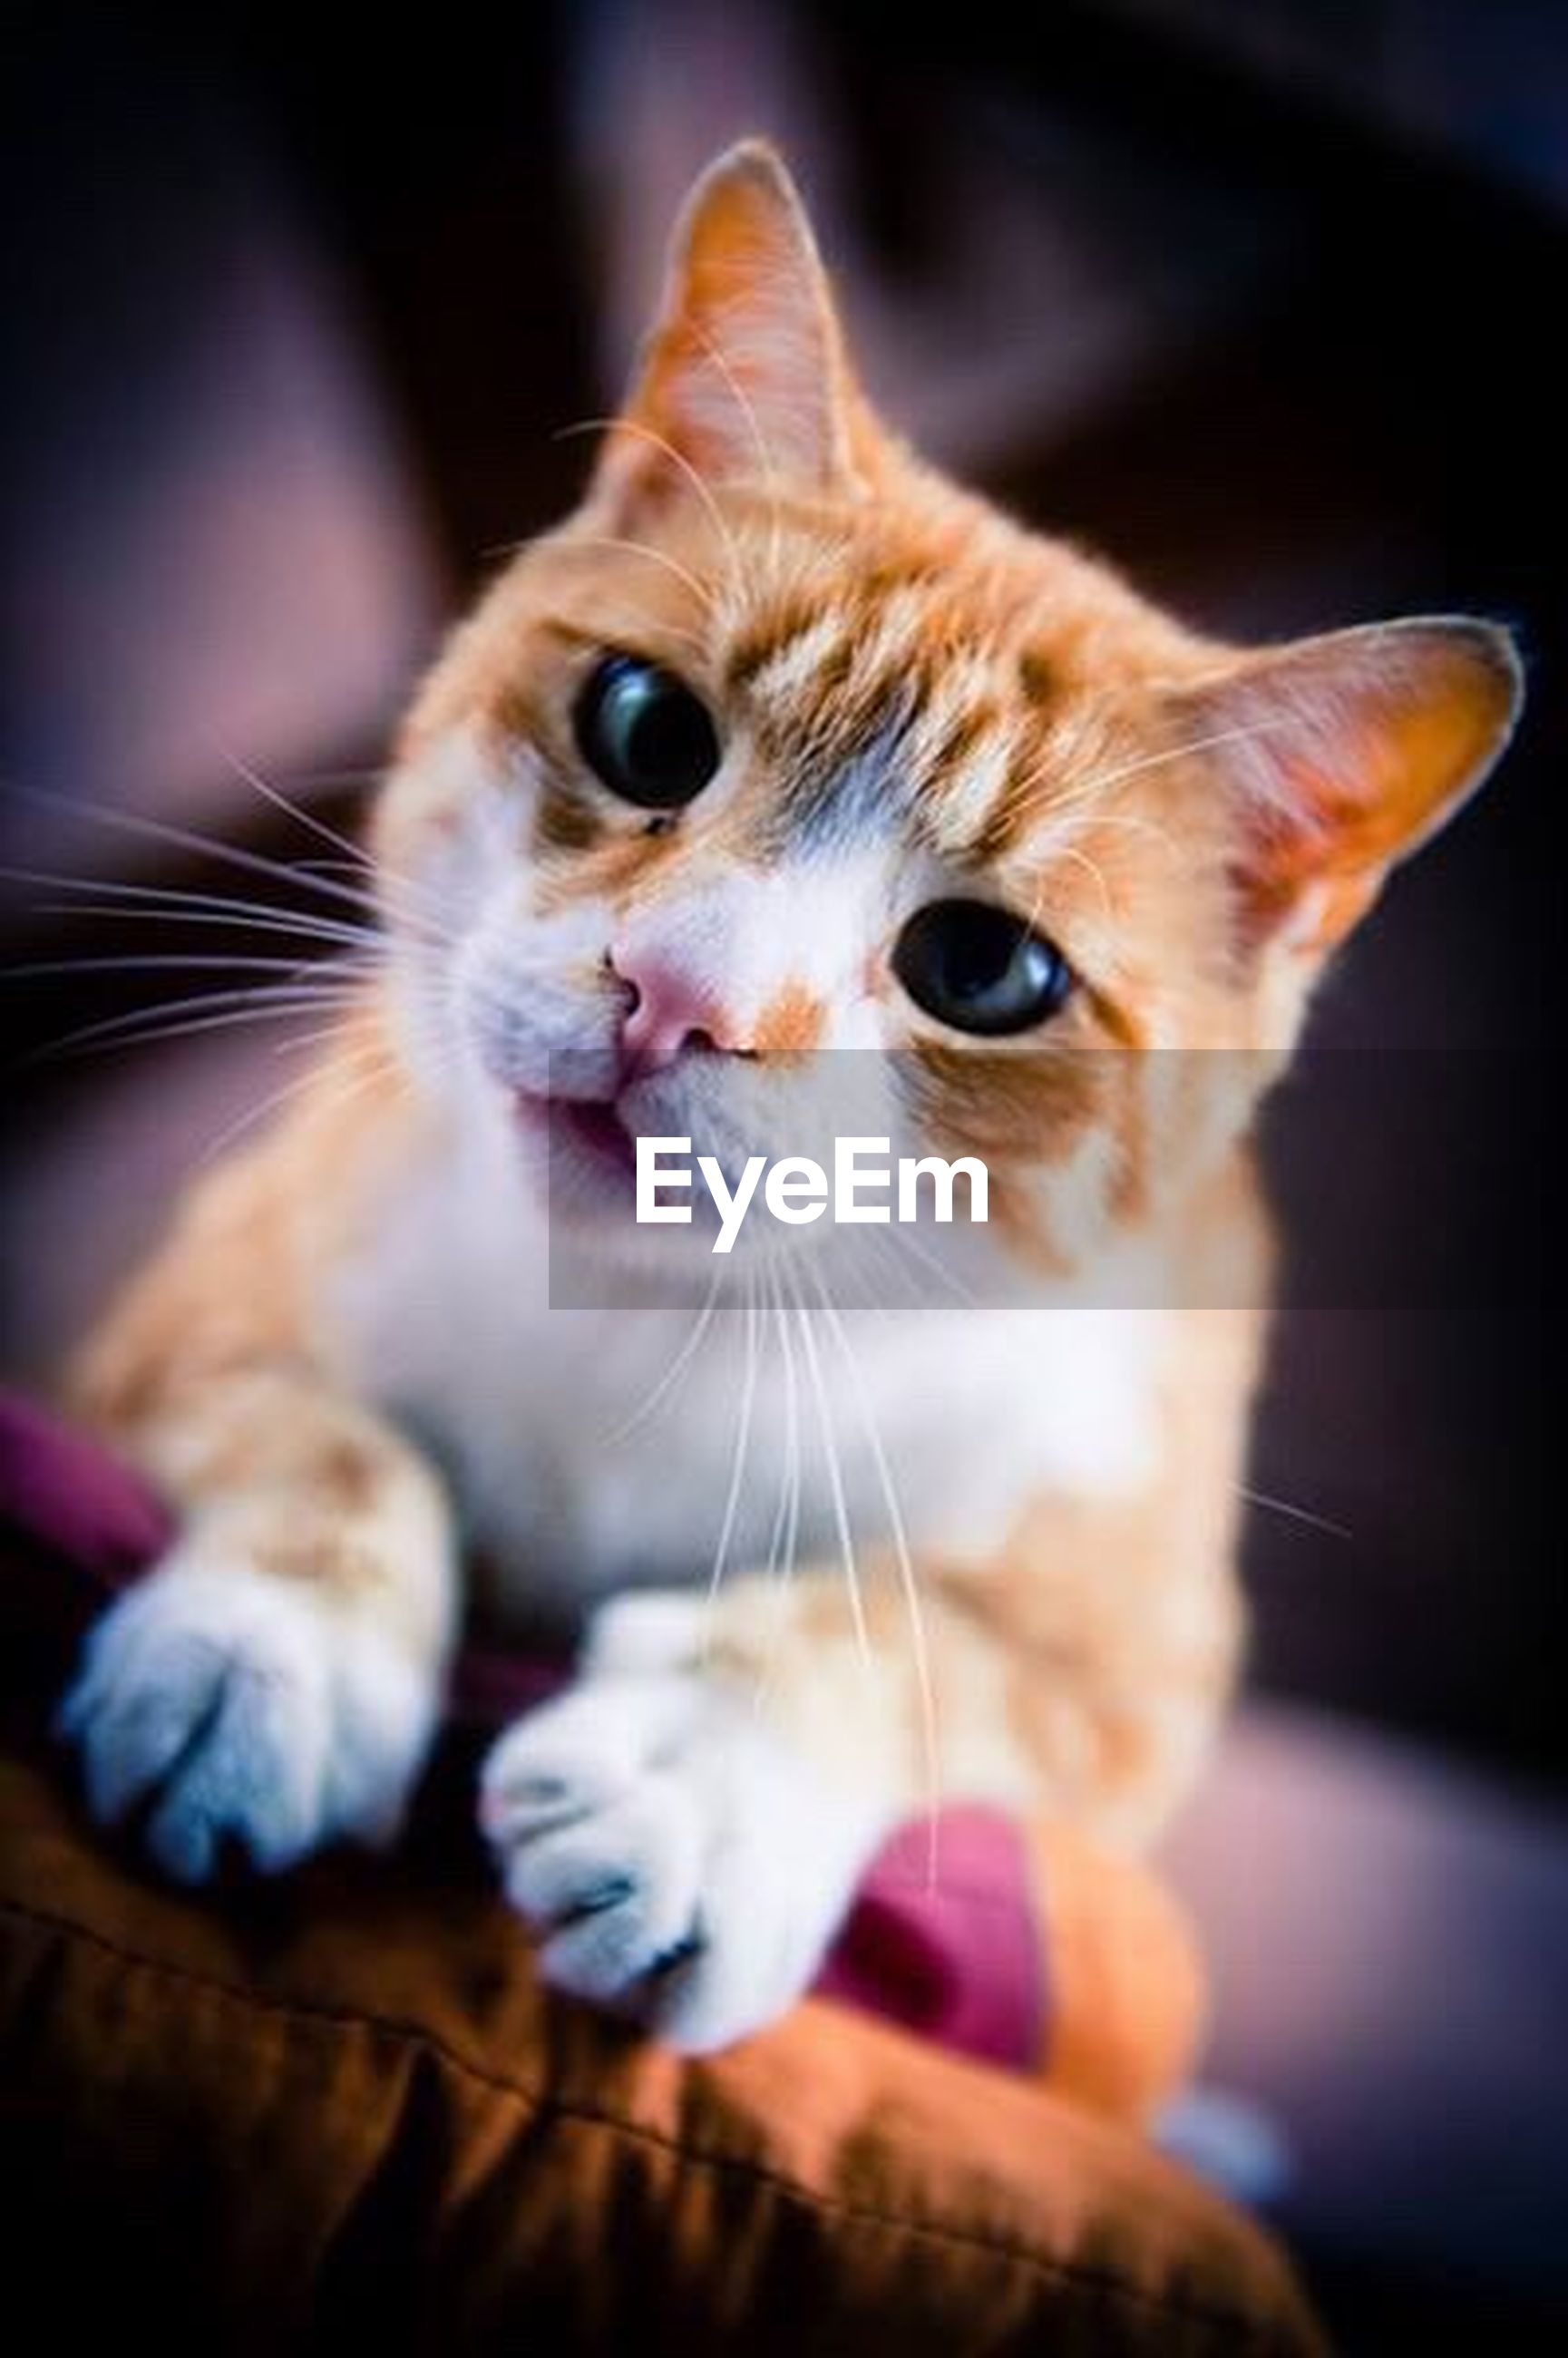 pets, domestic animals, animal themes, indoors, domestic cat, one animal, mammal, cat, feline, whisker, portrait, looking at camera, home interior, focus on foreground, close-up, relaxation, selective focus, cute, young animal